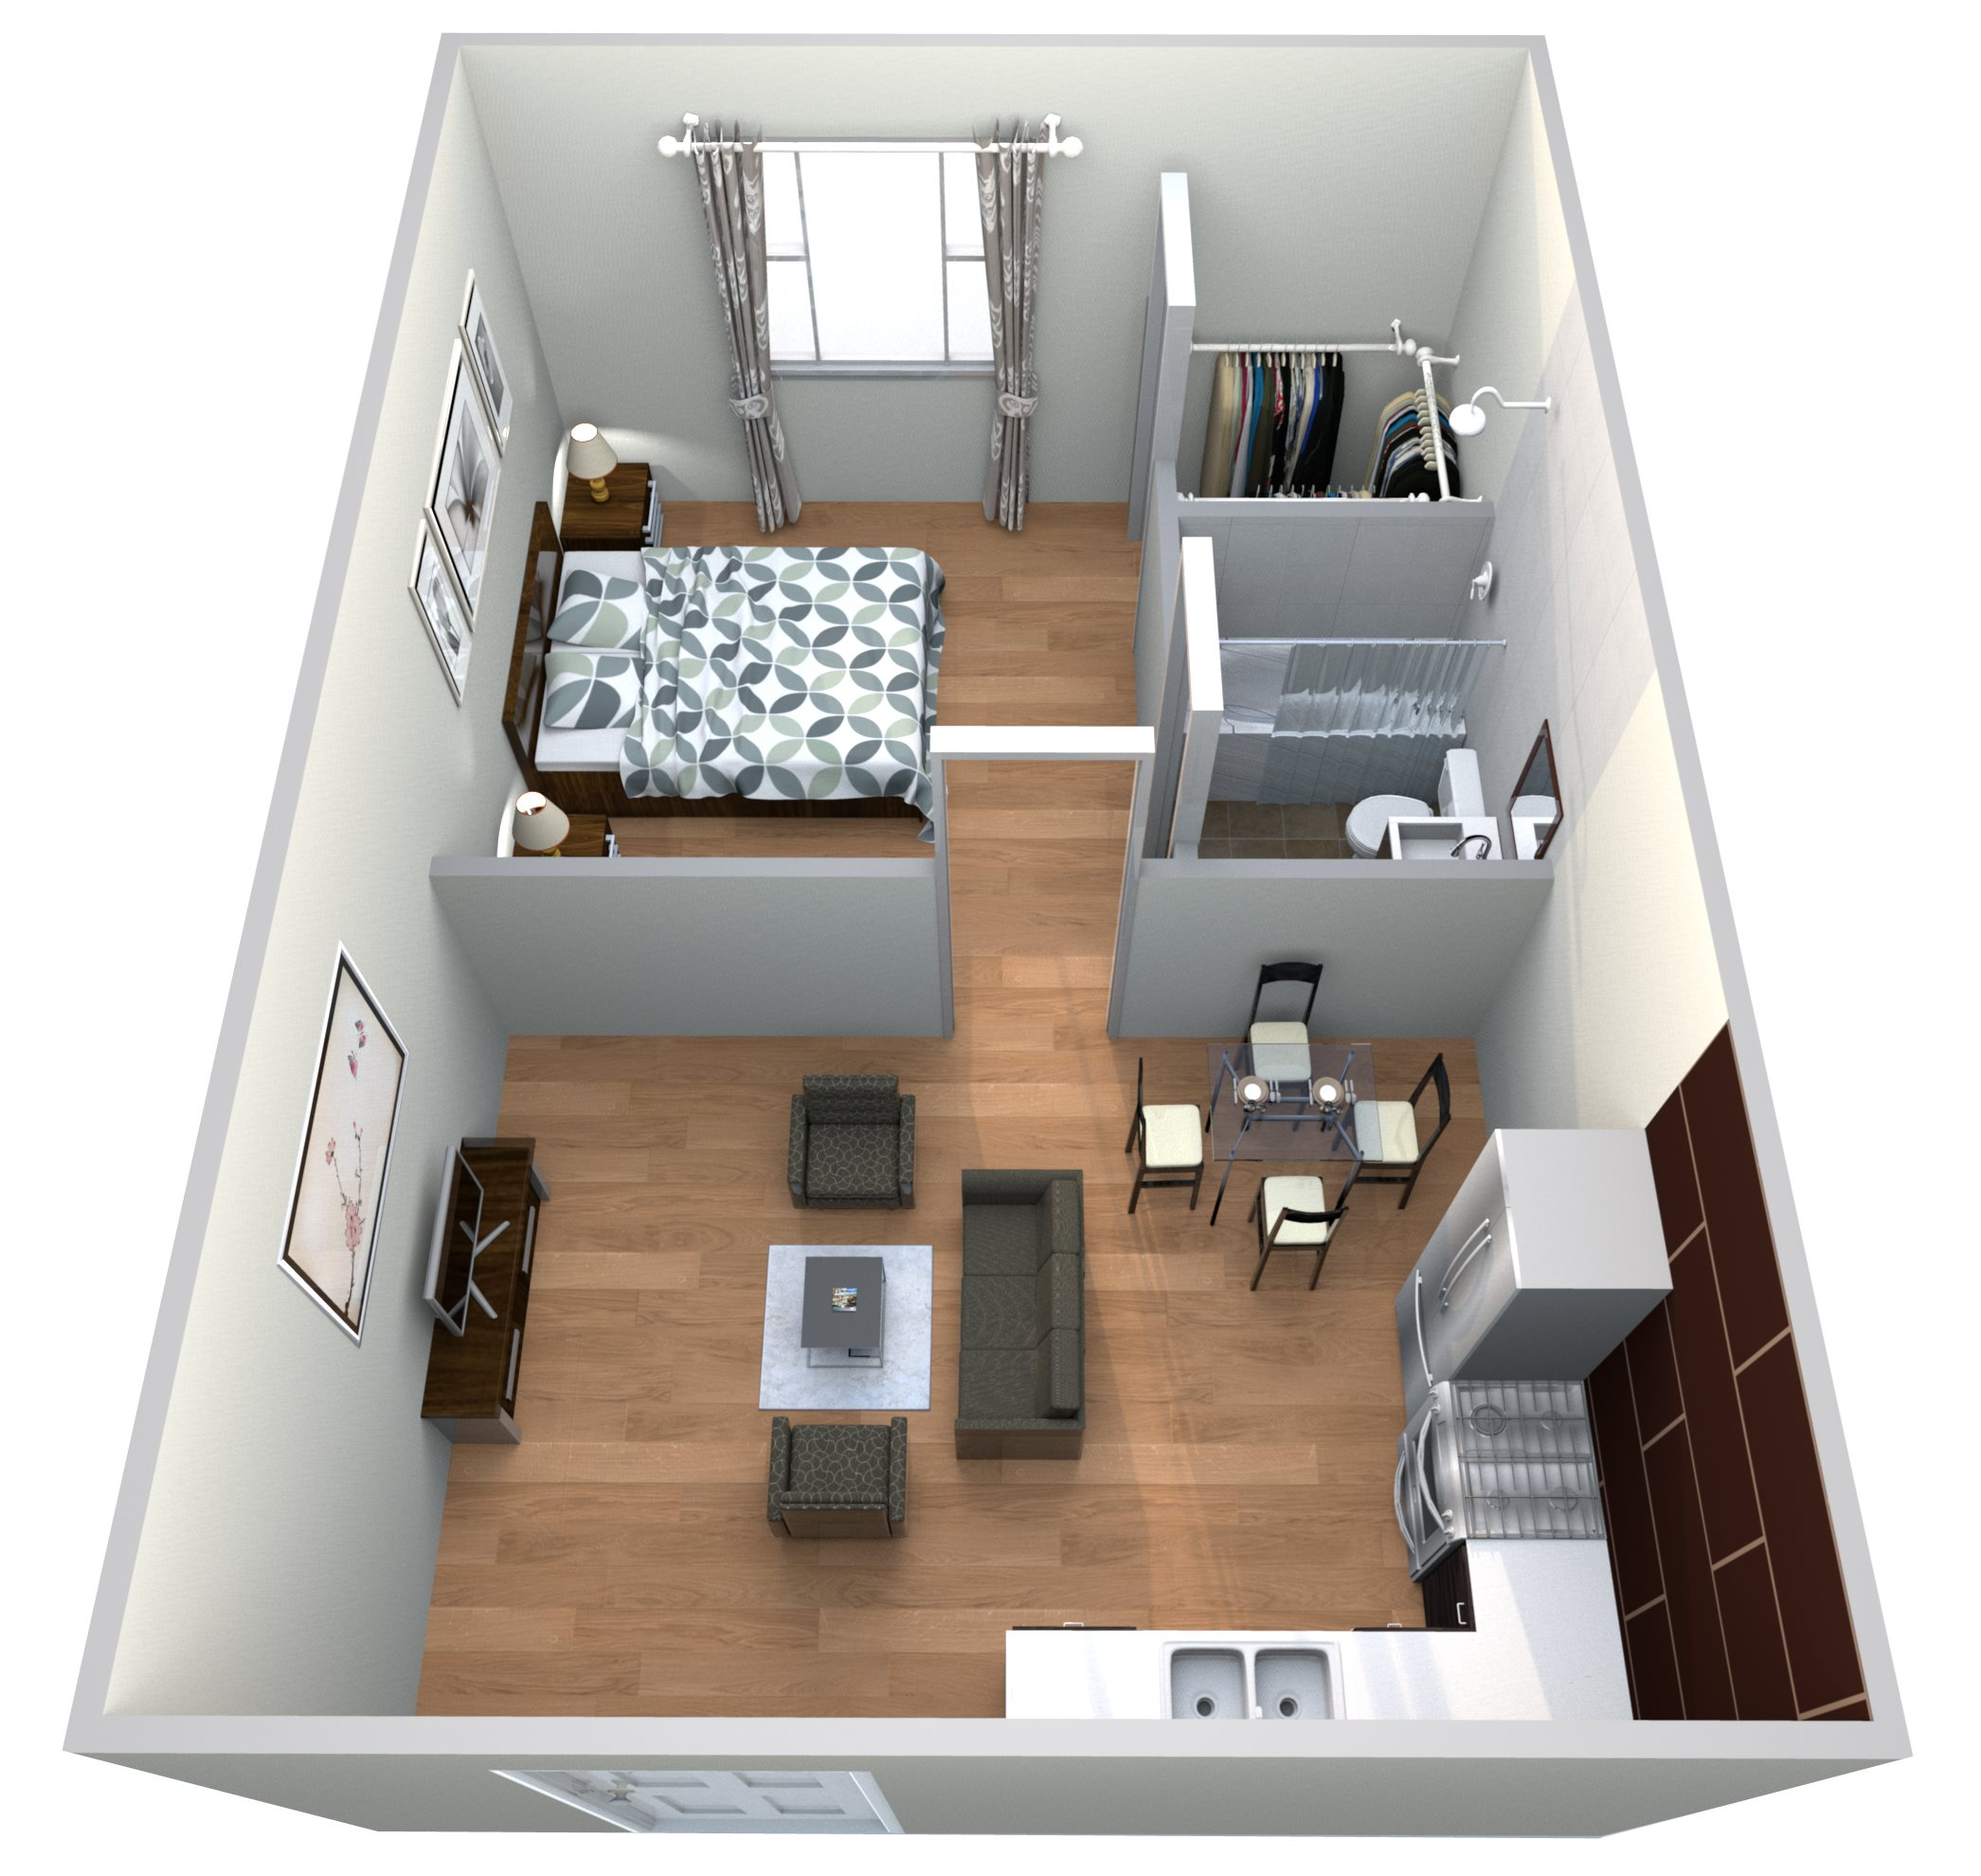 #20 Atrium - 1 Bedroom w 1 Bath Floor Plan 7